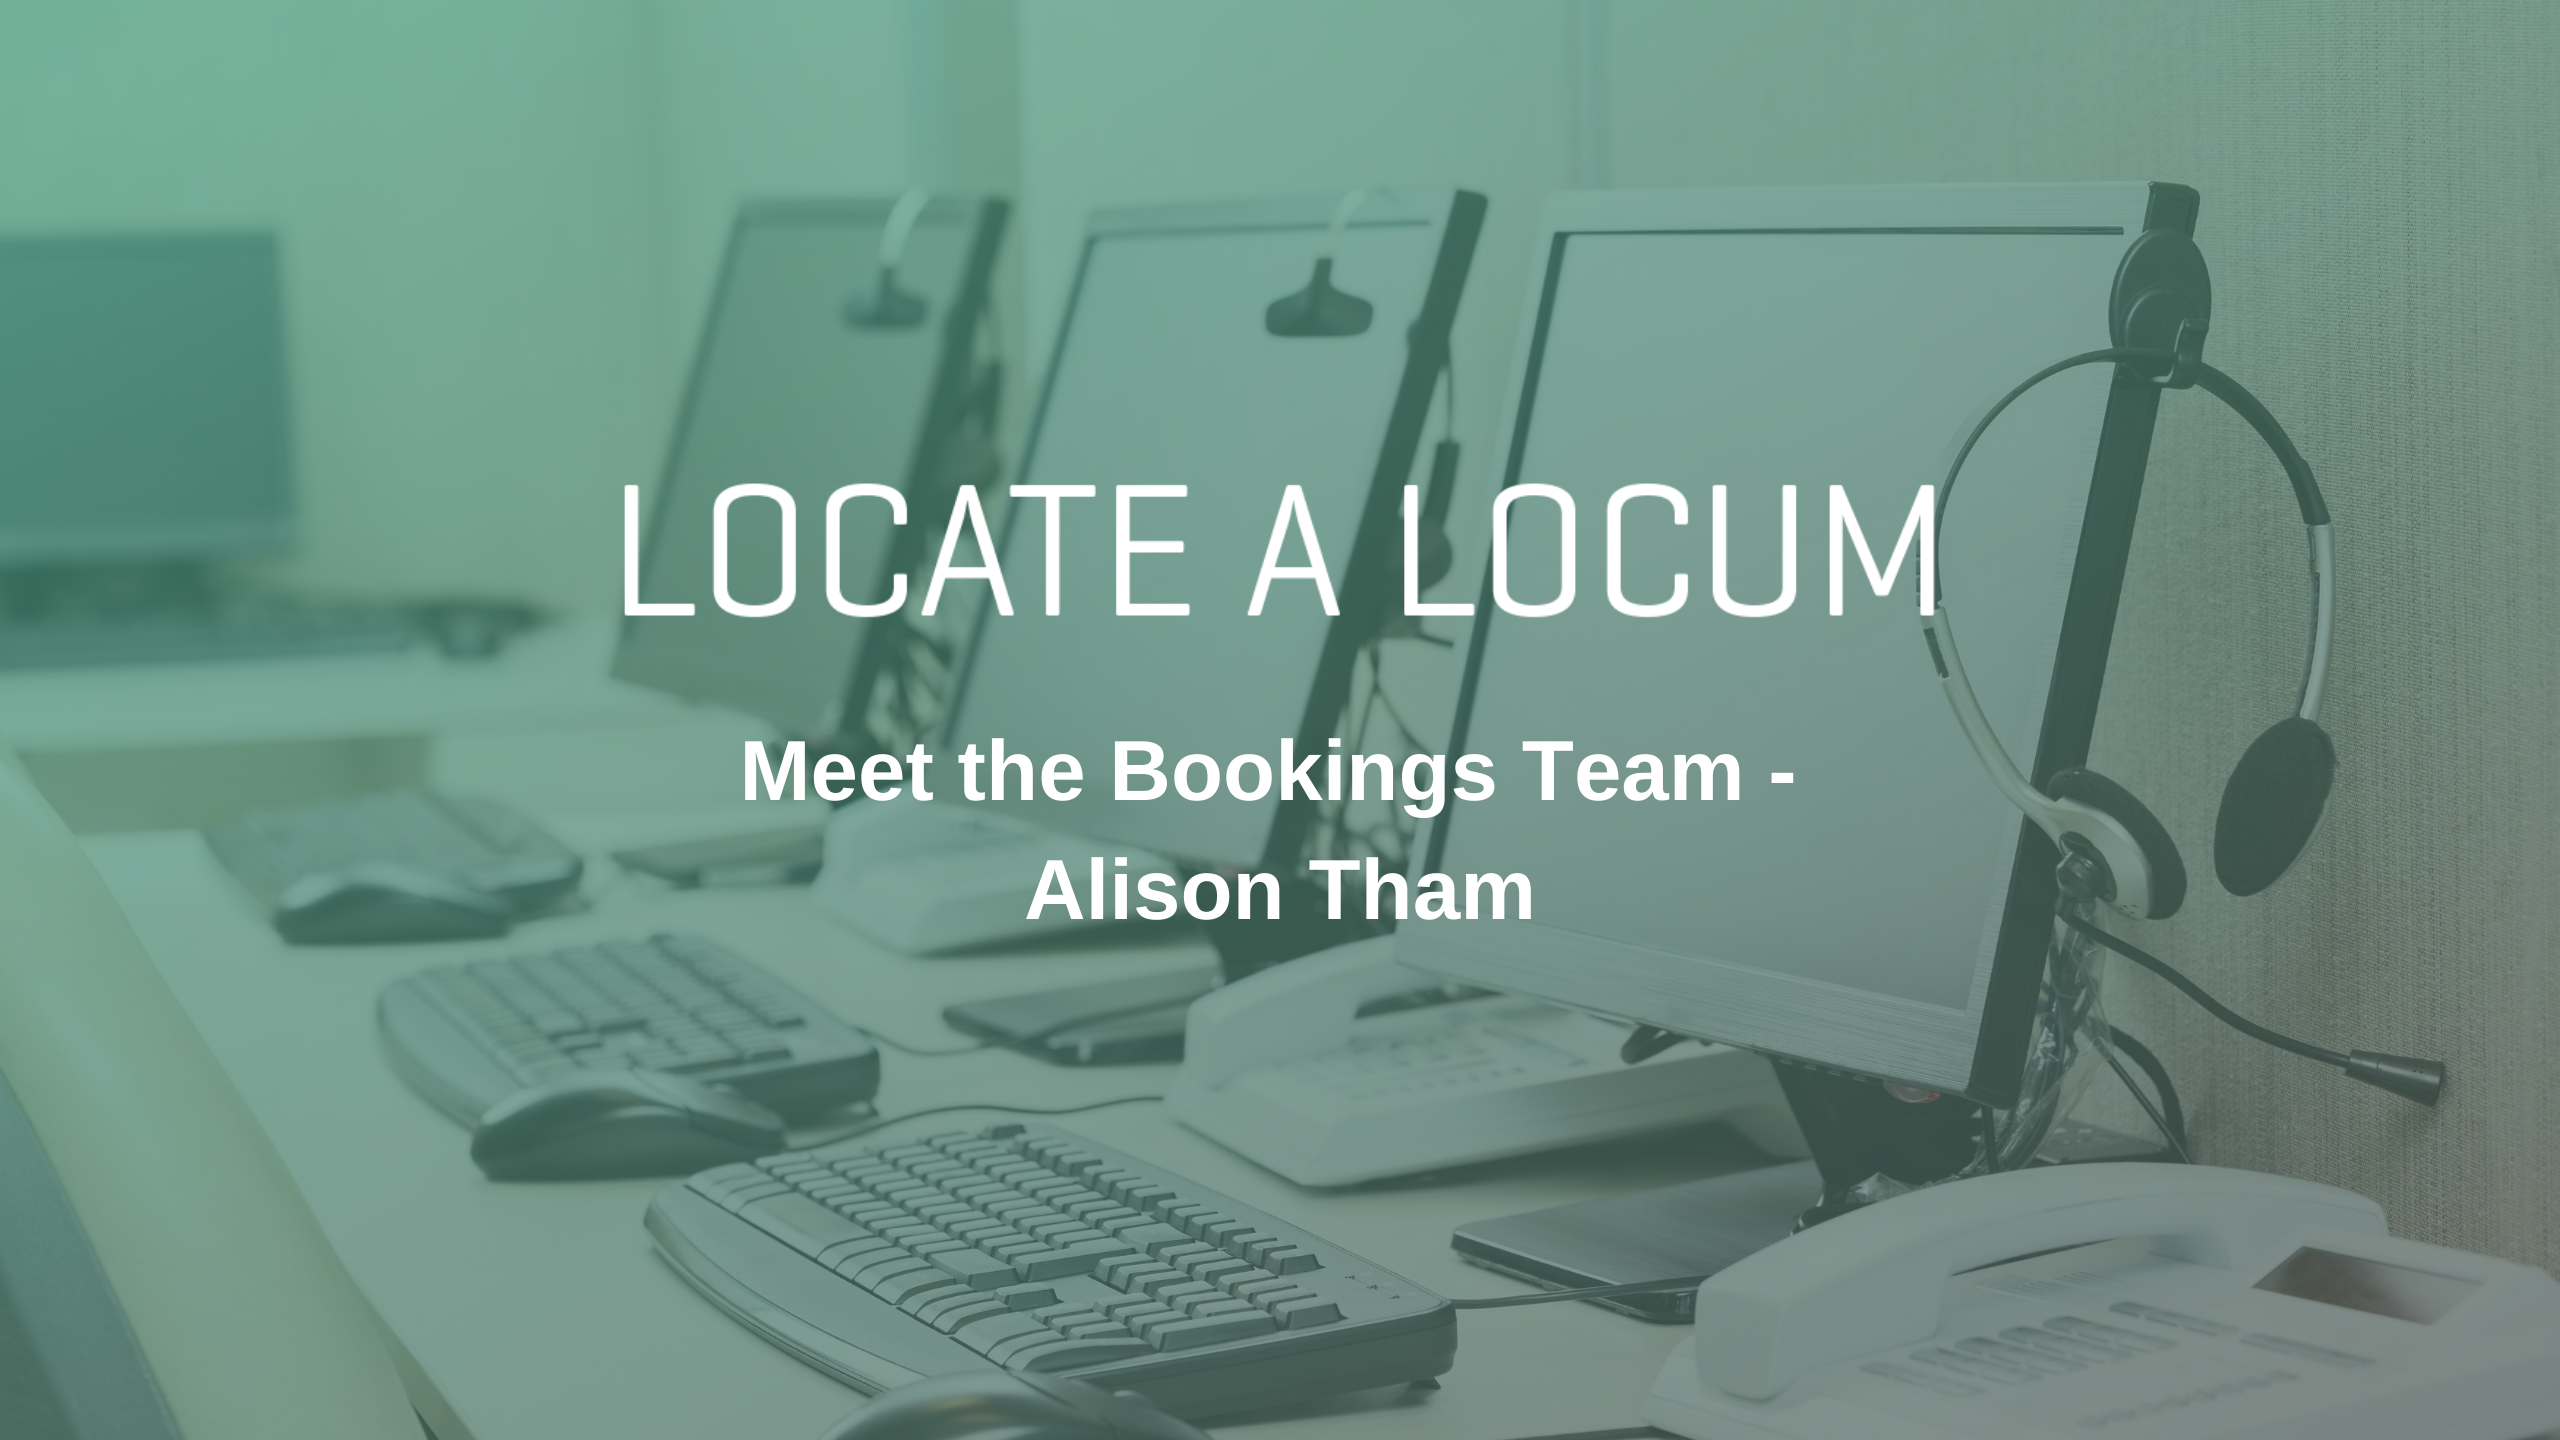 meet-the-bookings-team-alison-tham